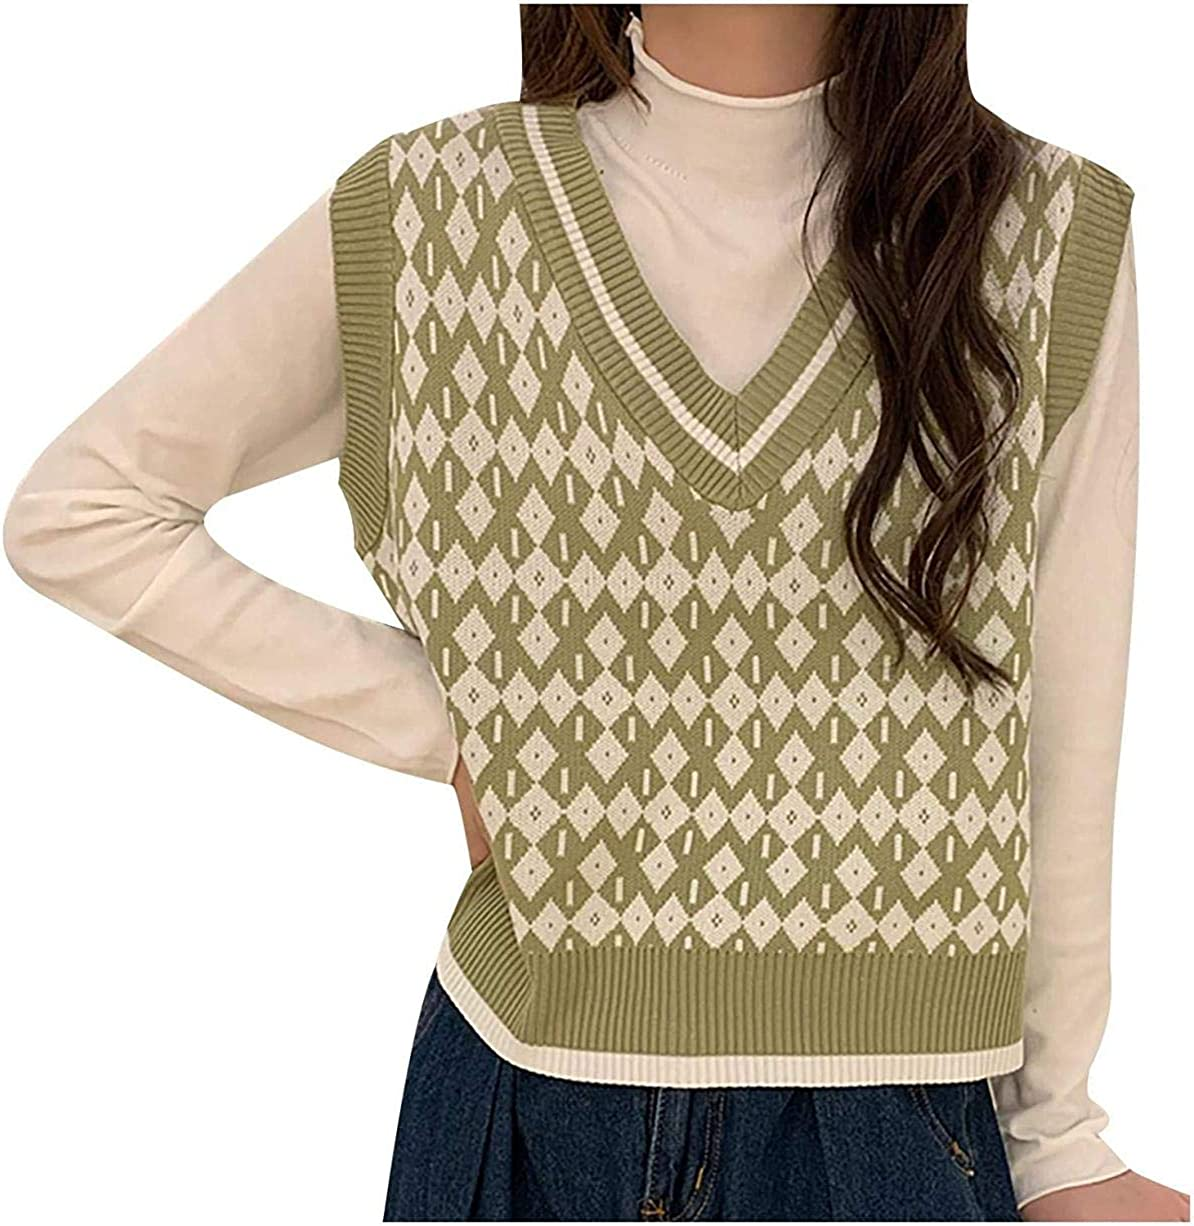 Women Classic Argyle Plaid Sweater Vest, England Style Sleeveless V Neck Preppy Style Knitted Crop Tank Top